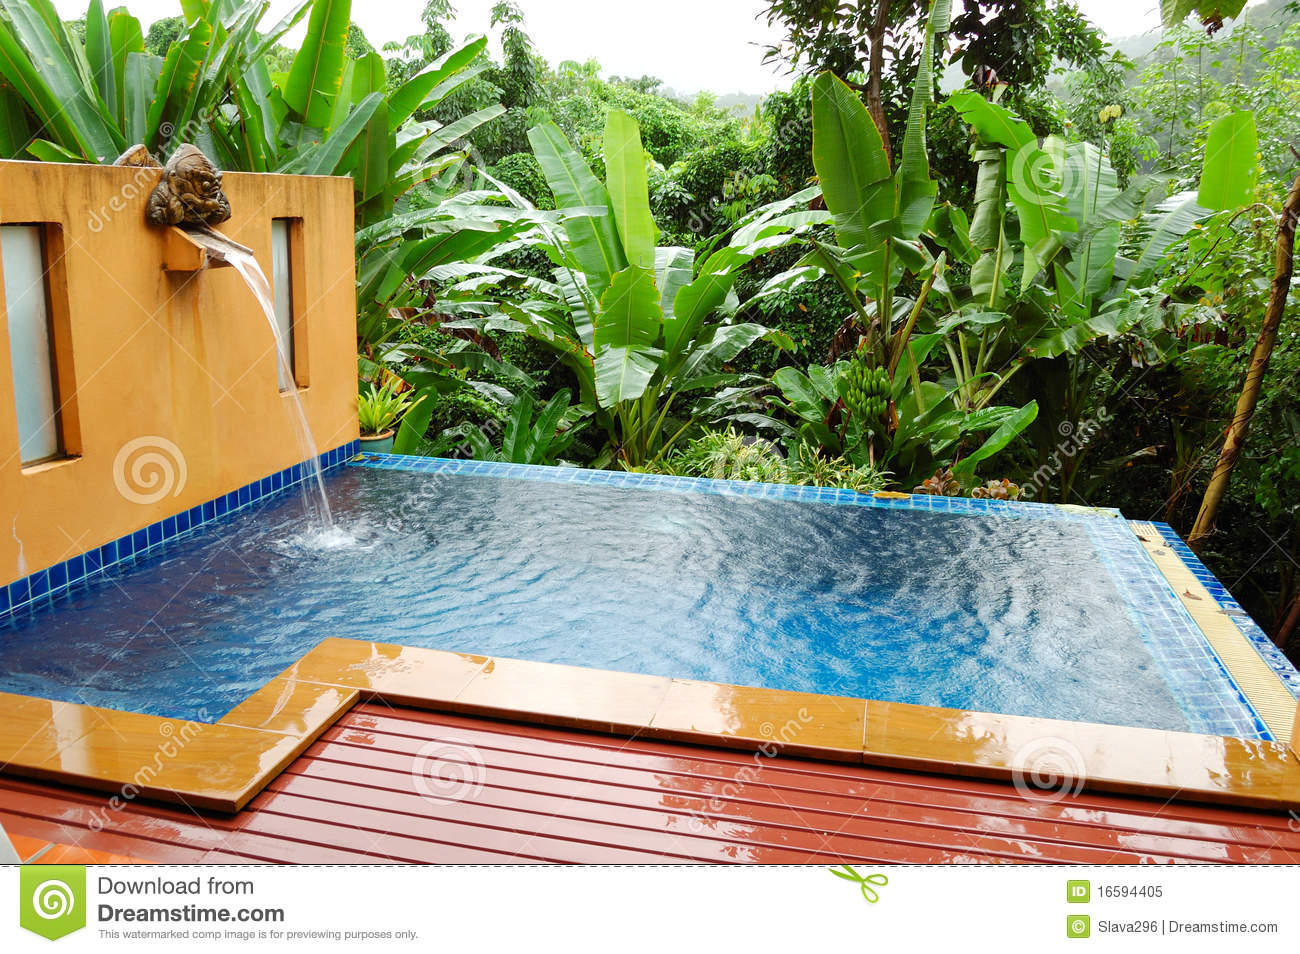 Outdoor Jacuzzi At The Luxury Villa Royalty Free Stock Photo ...